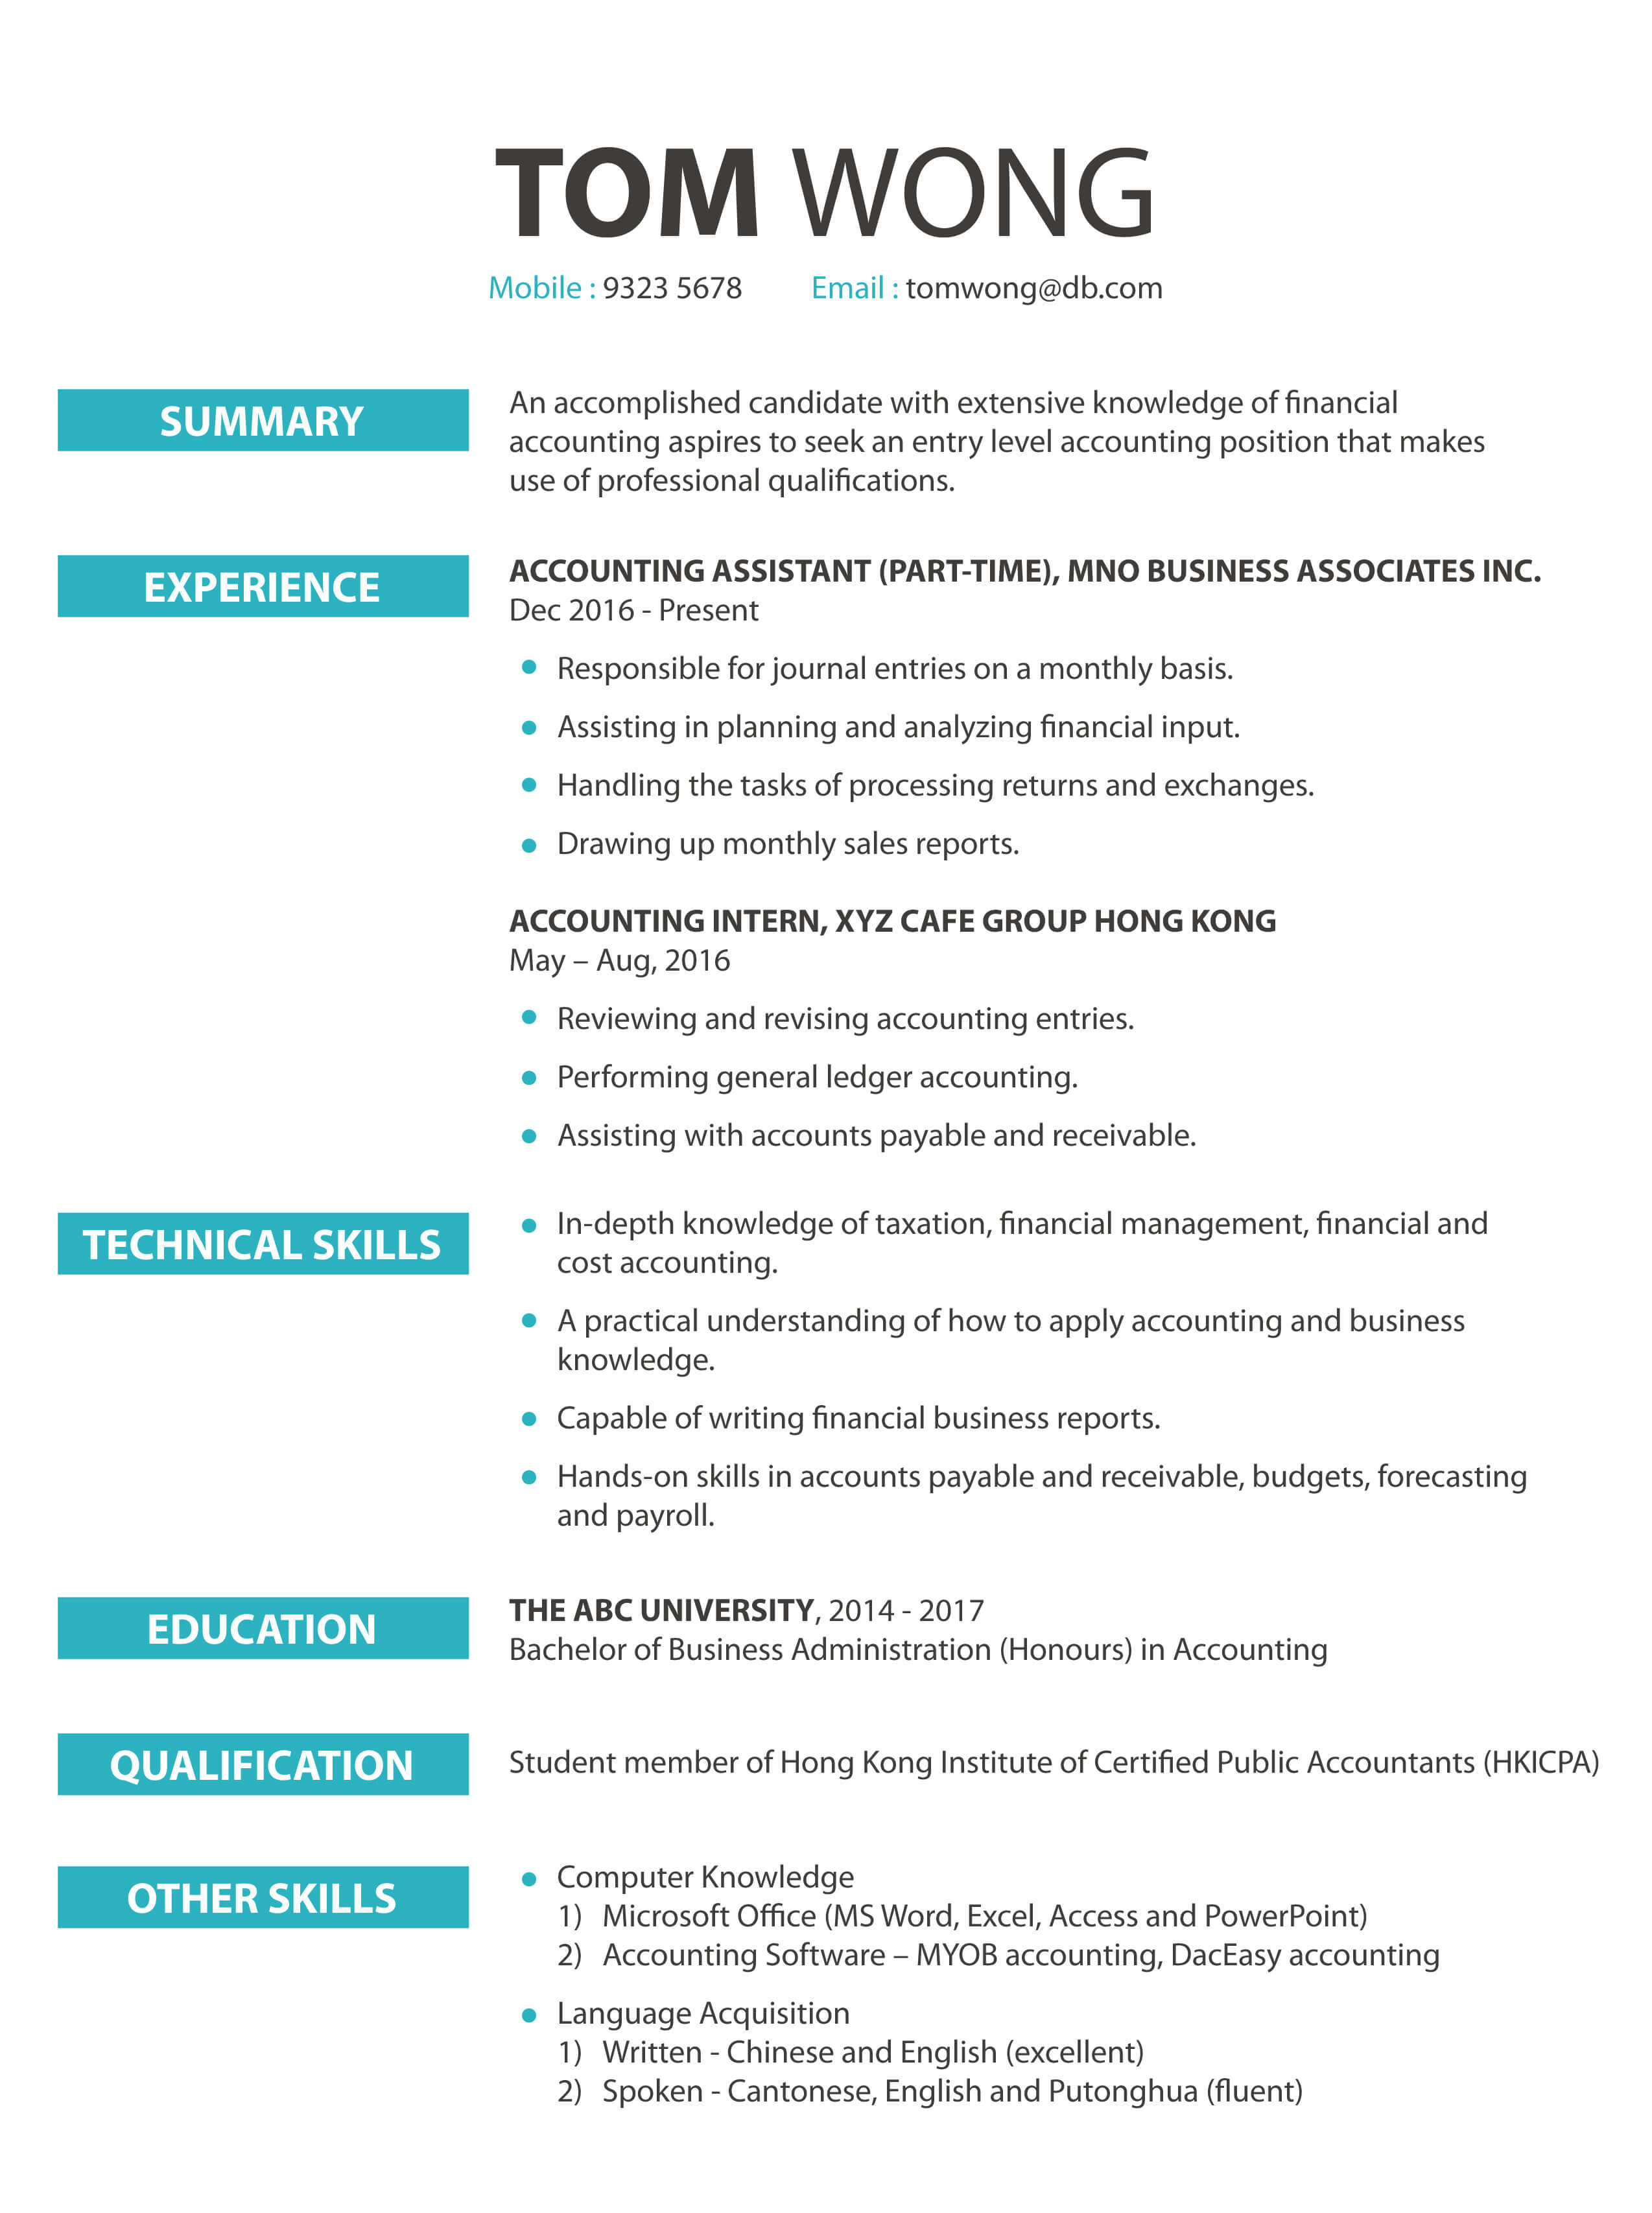 CV cover letter - Accounting